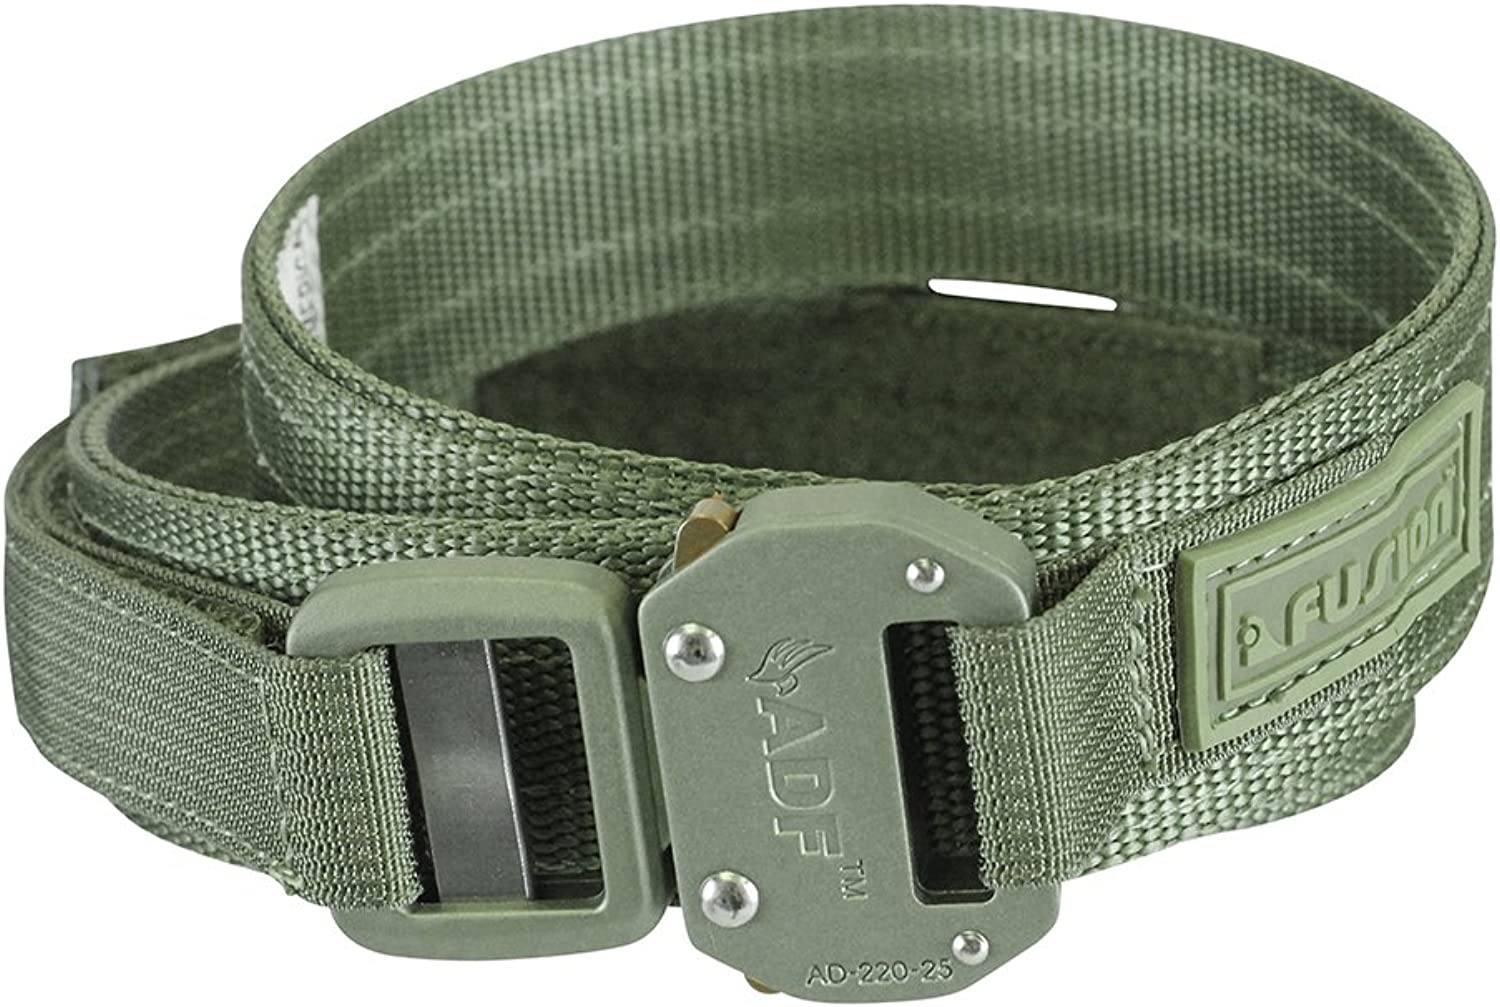 Fusion Tactical Military Police Trouser Belt Generation II Type C Foliage Green XLarge 4348  1.5 Wide